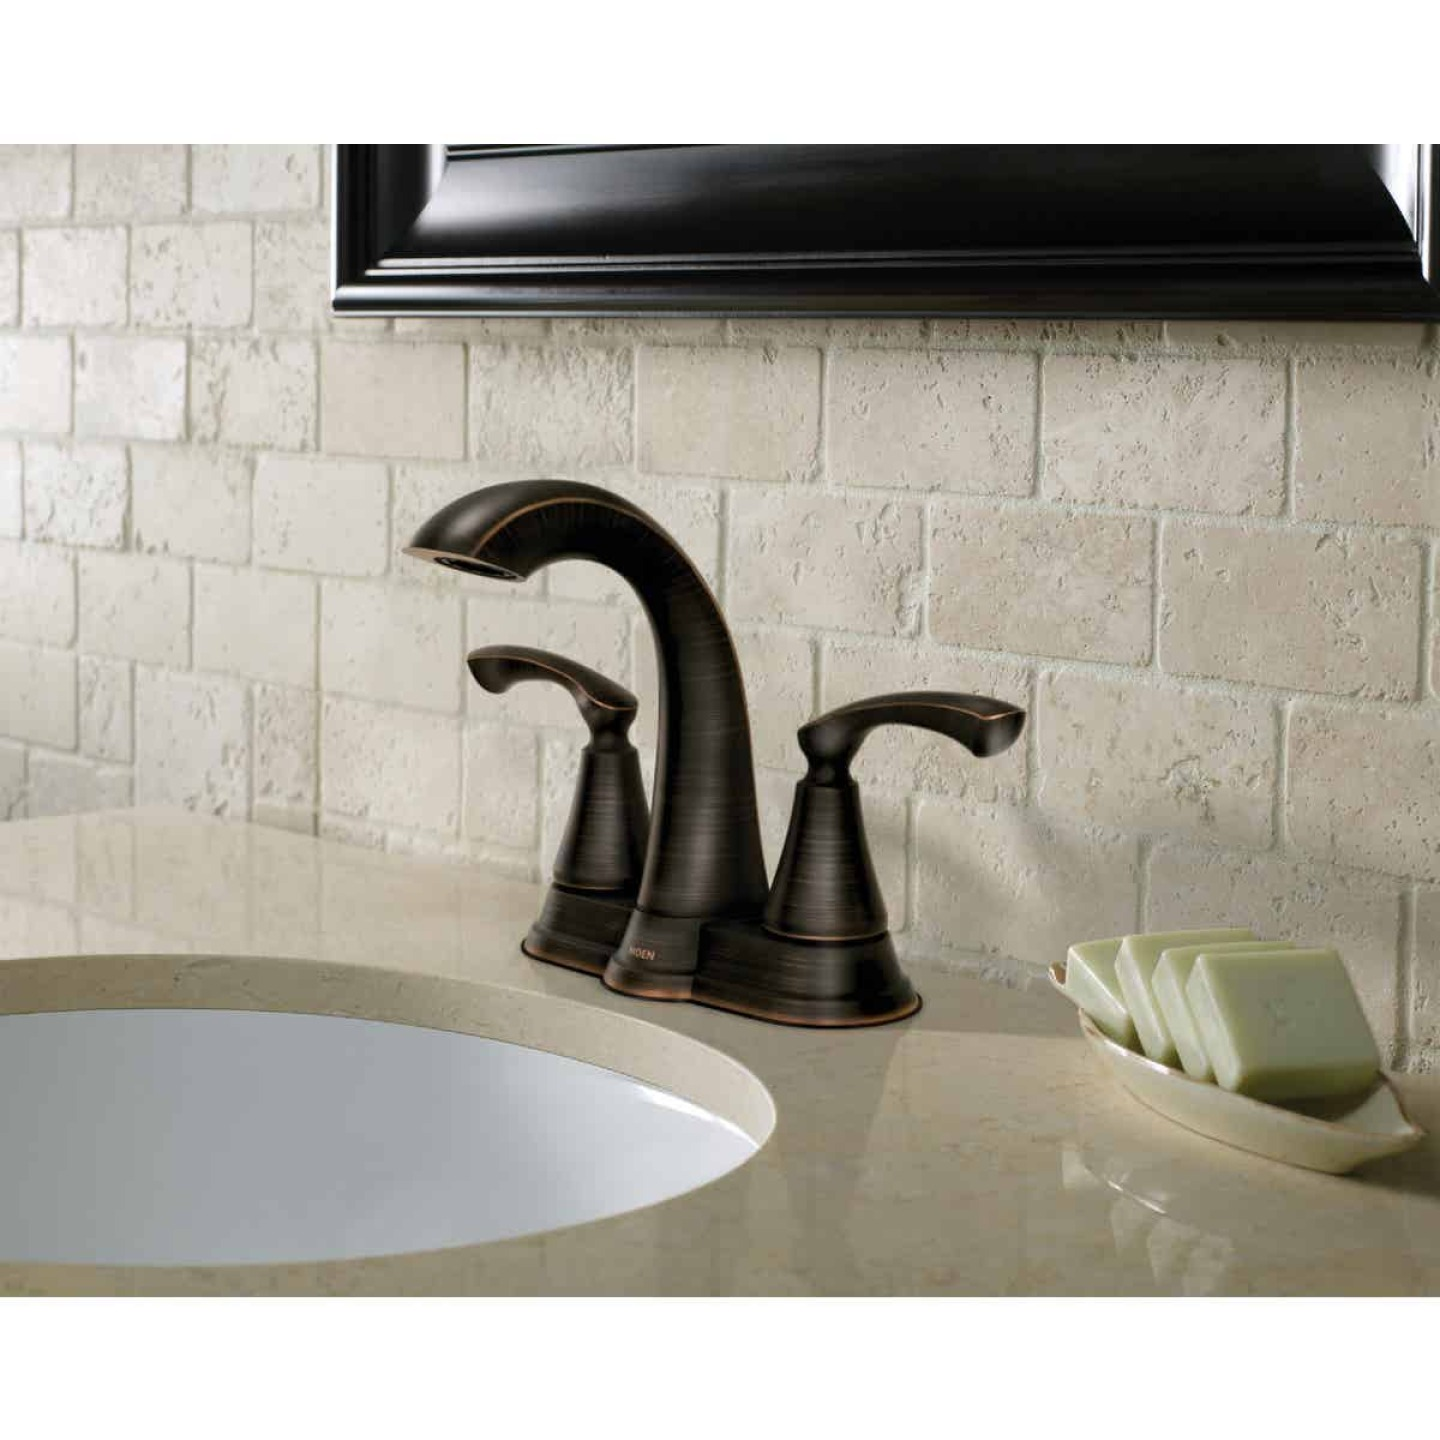 Moen Tiffin Mediterranean Bronze 2-Handle Lever 4 In. Centerset Bathroom Faucet Image 2